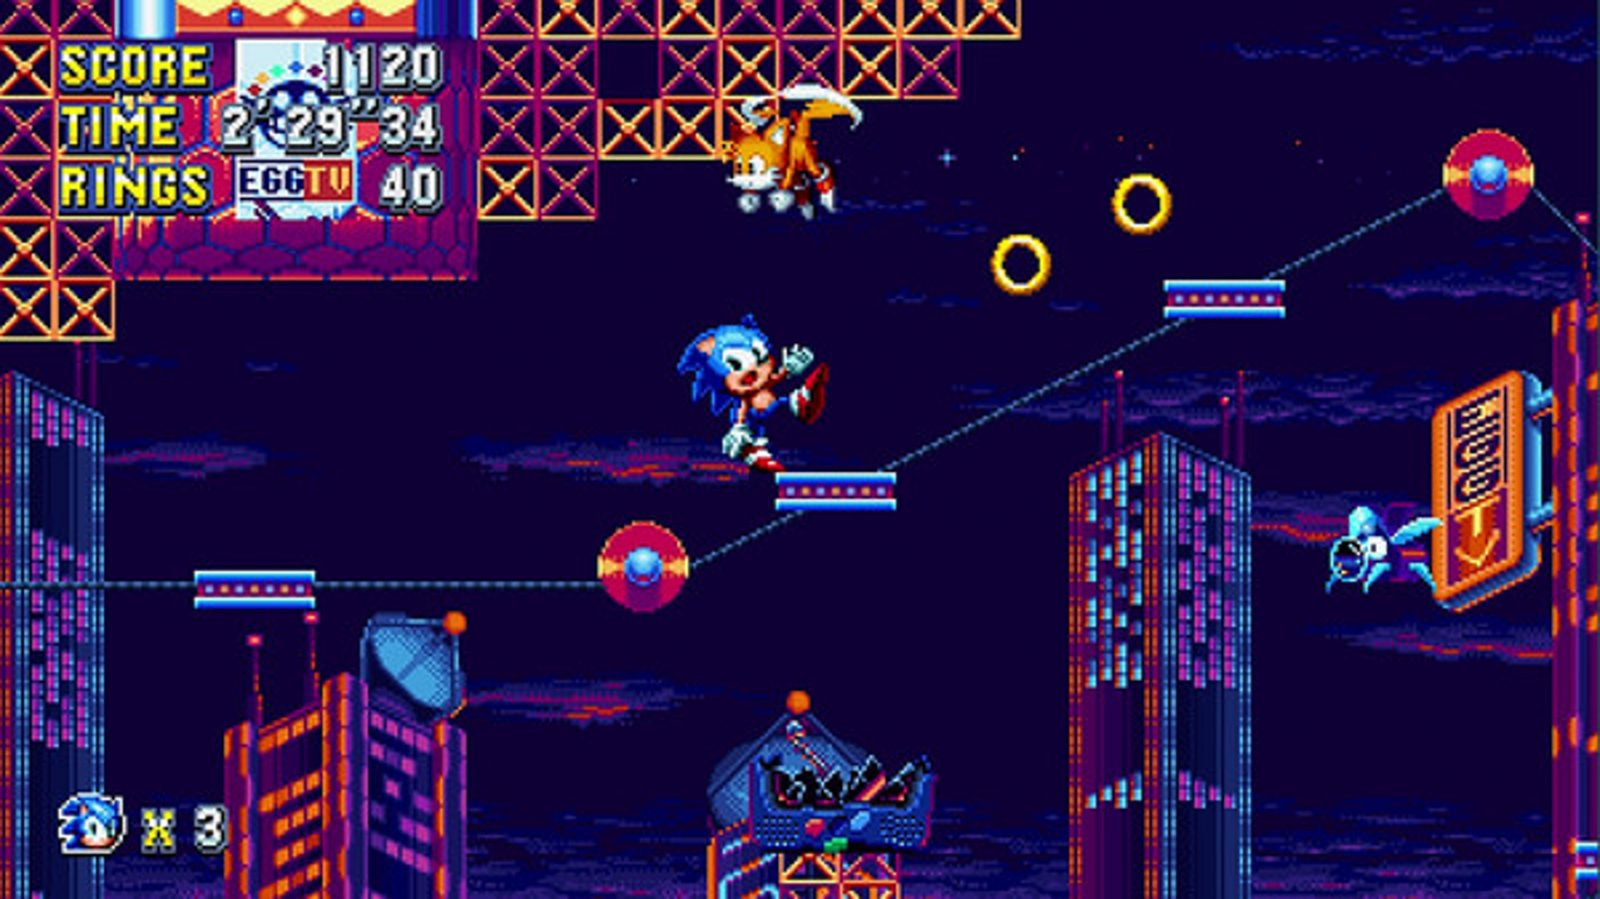 Get Sonic Mania and a bunch of other Sonic games for cheap in the Humble Sonic Bundle